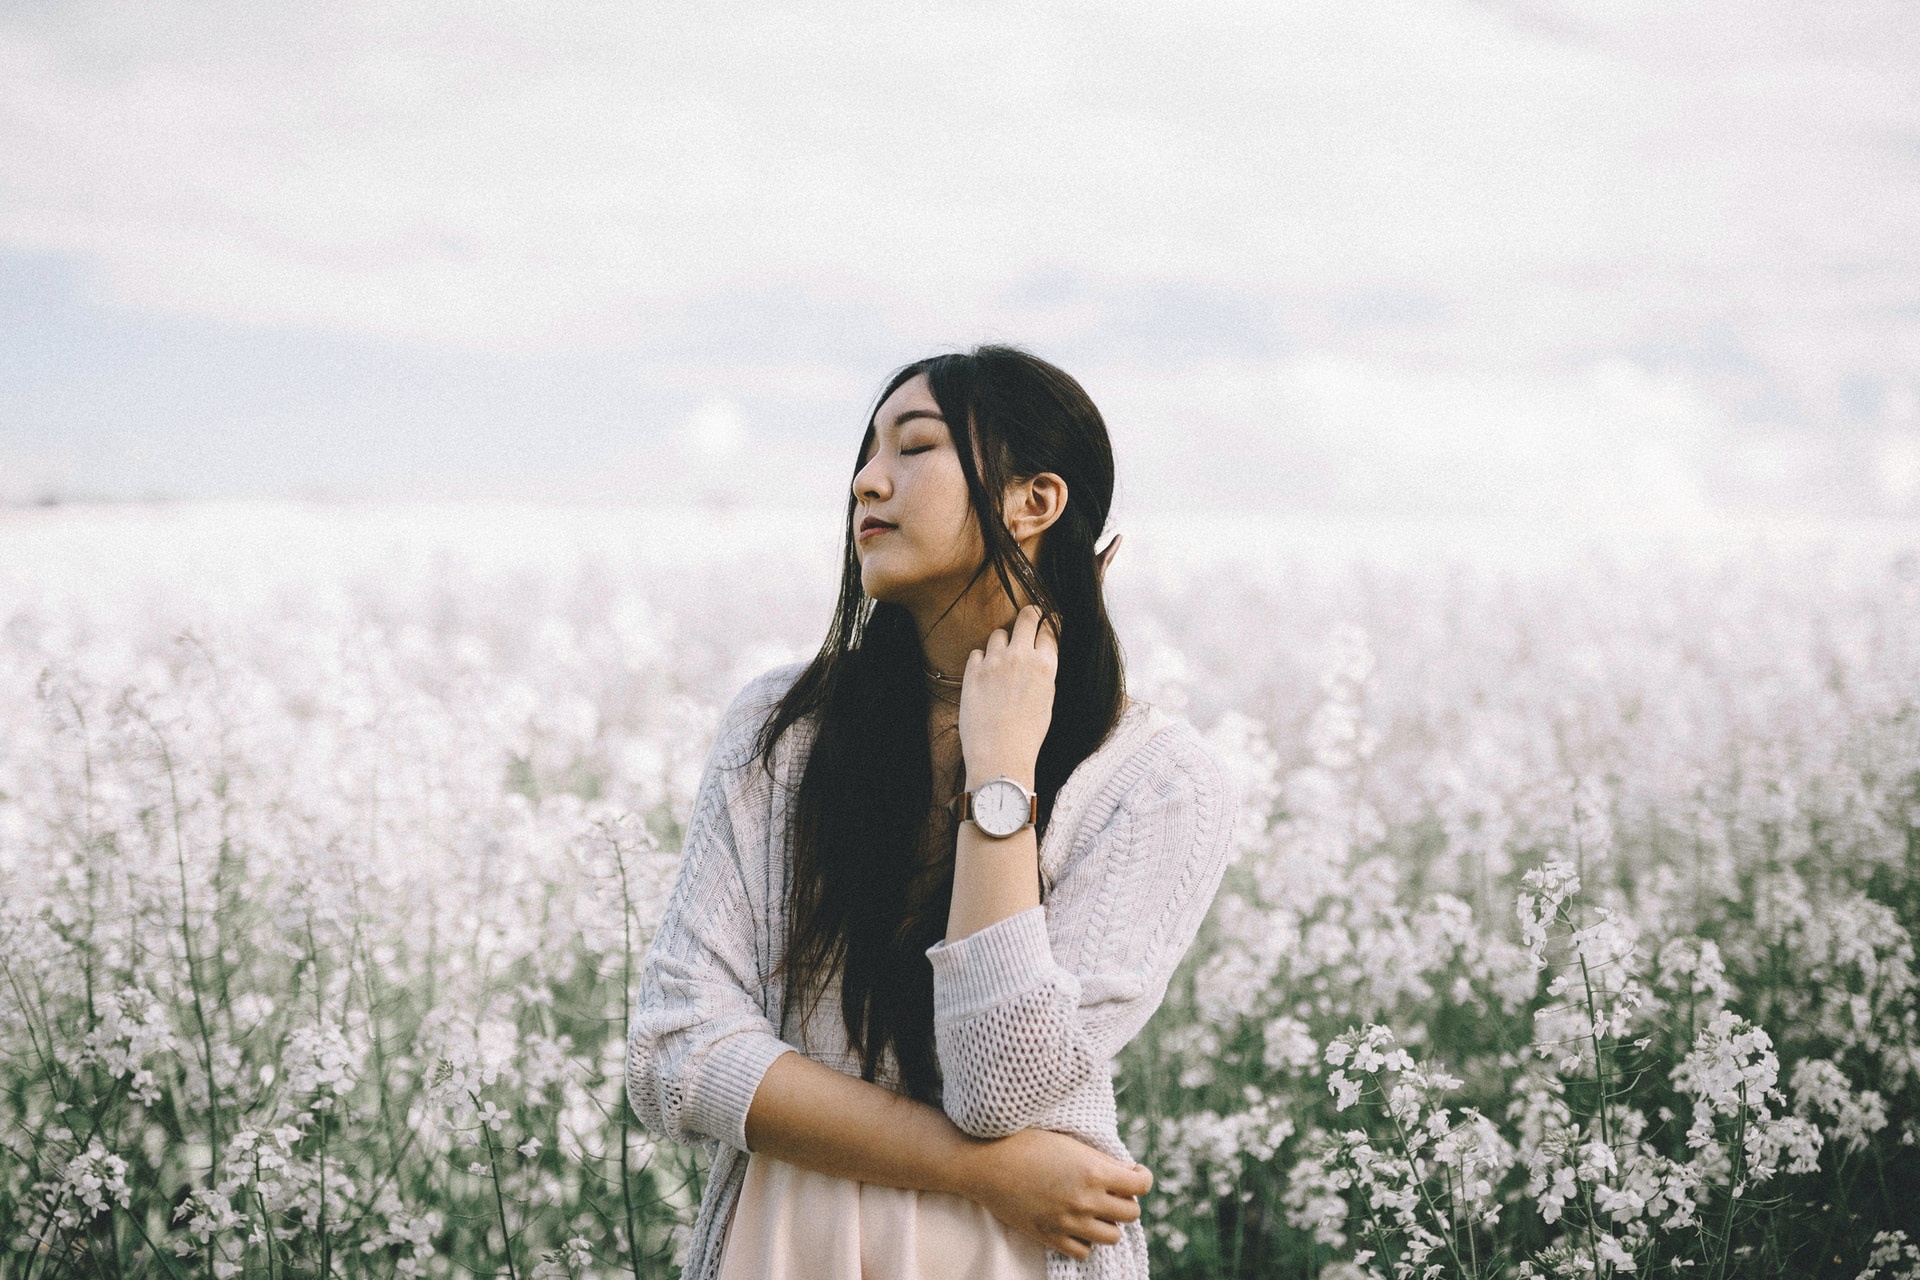 woman wearing peach inner top with gray knitted cardigan standing behind white flowerfield during daytime photography